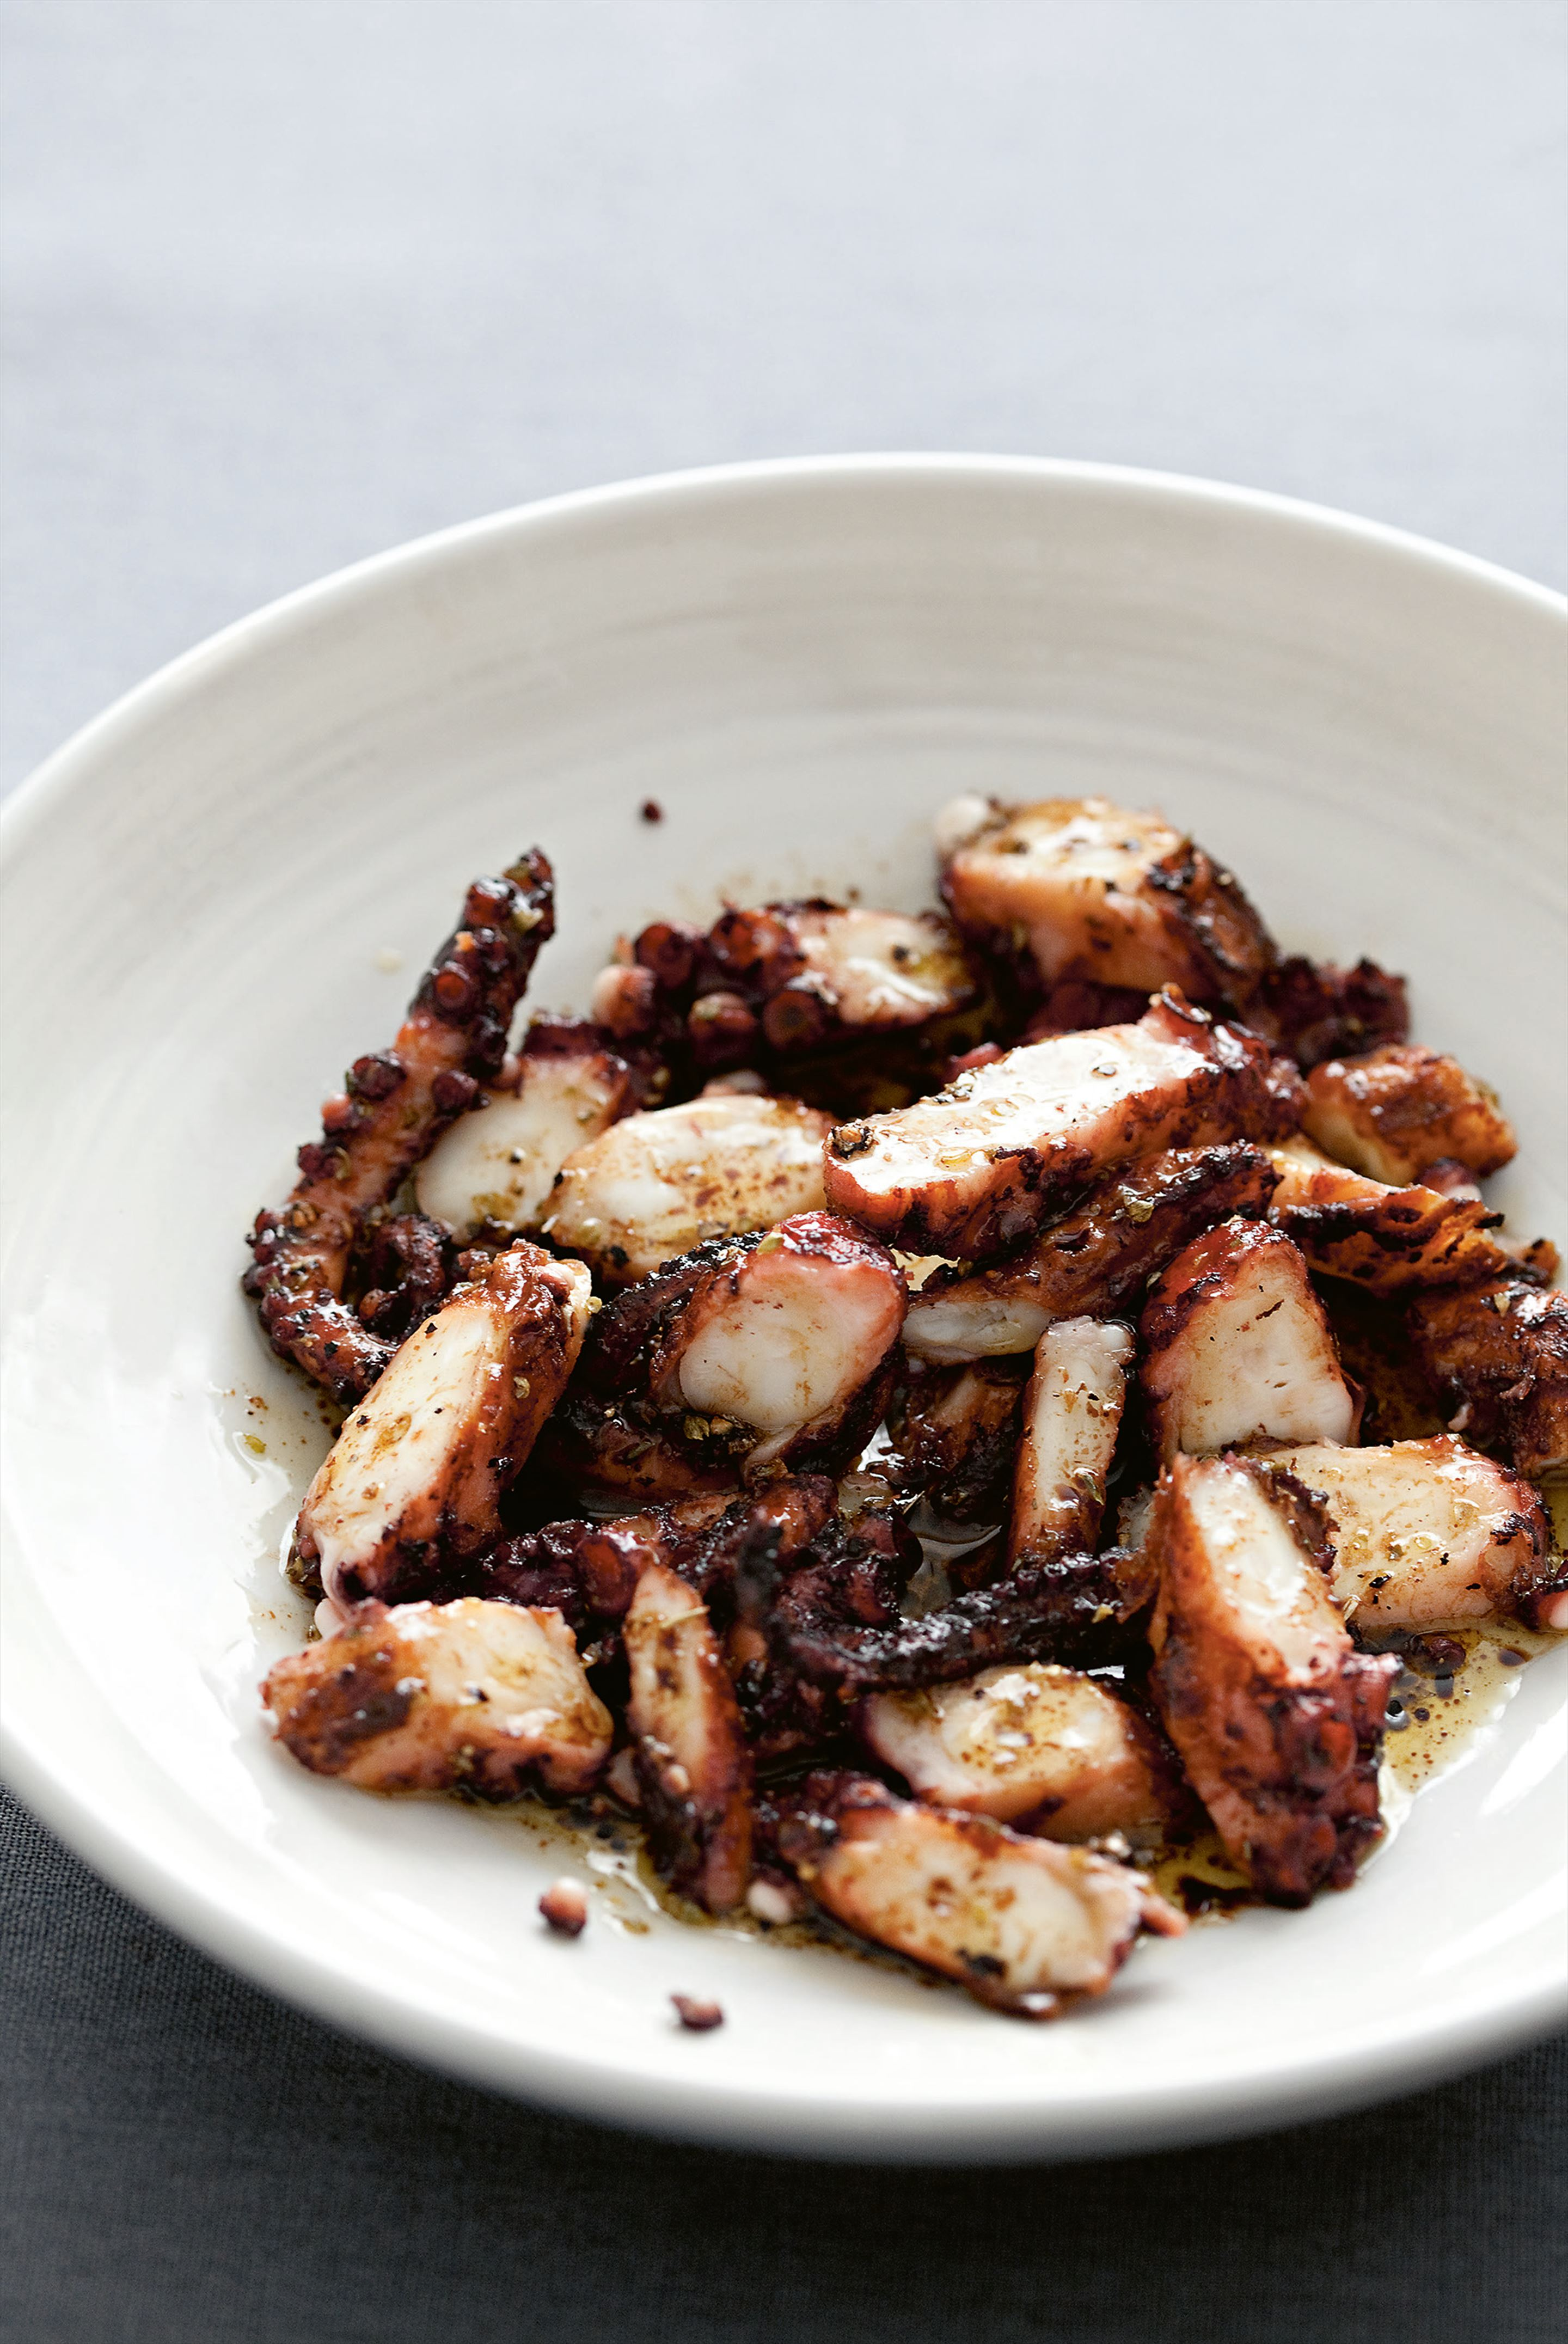 Chargrilled octopus